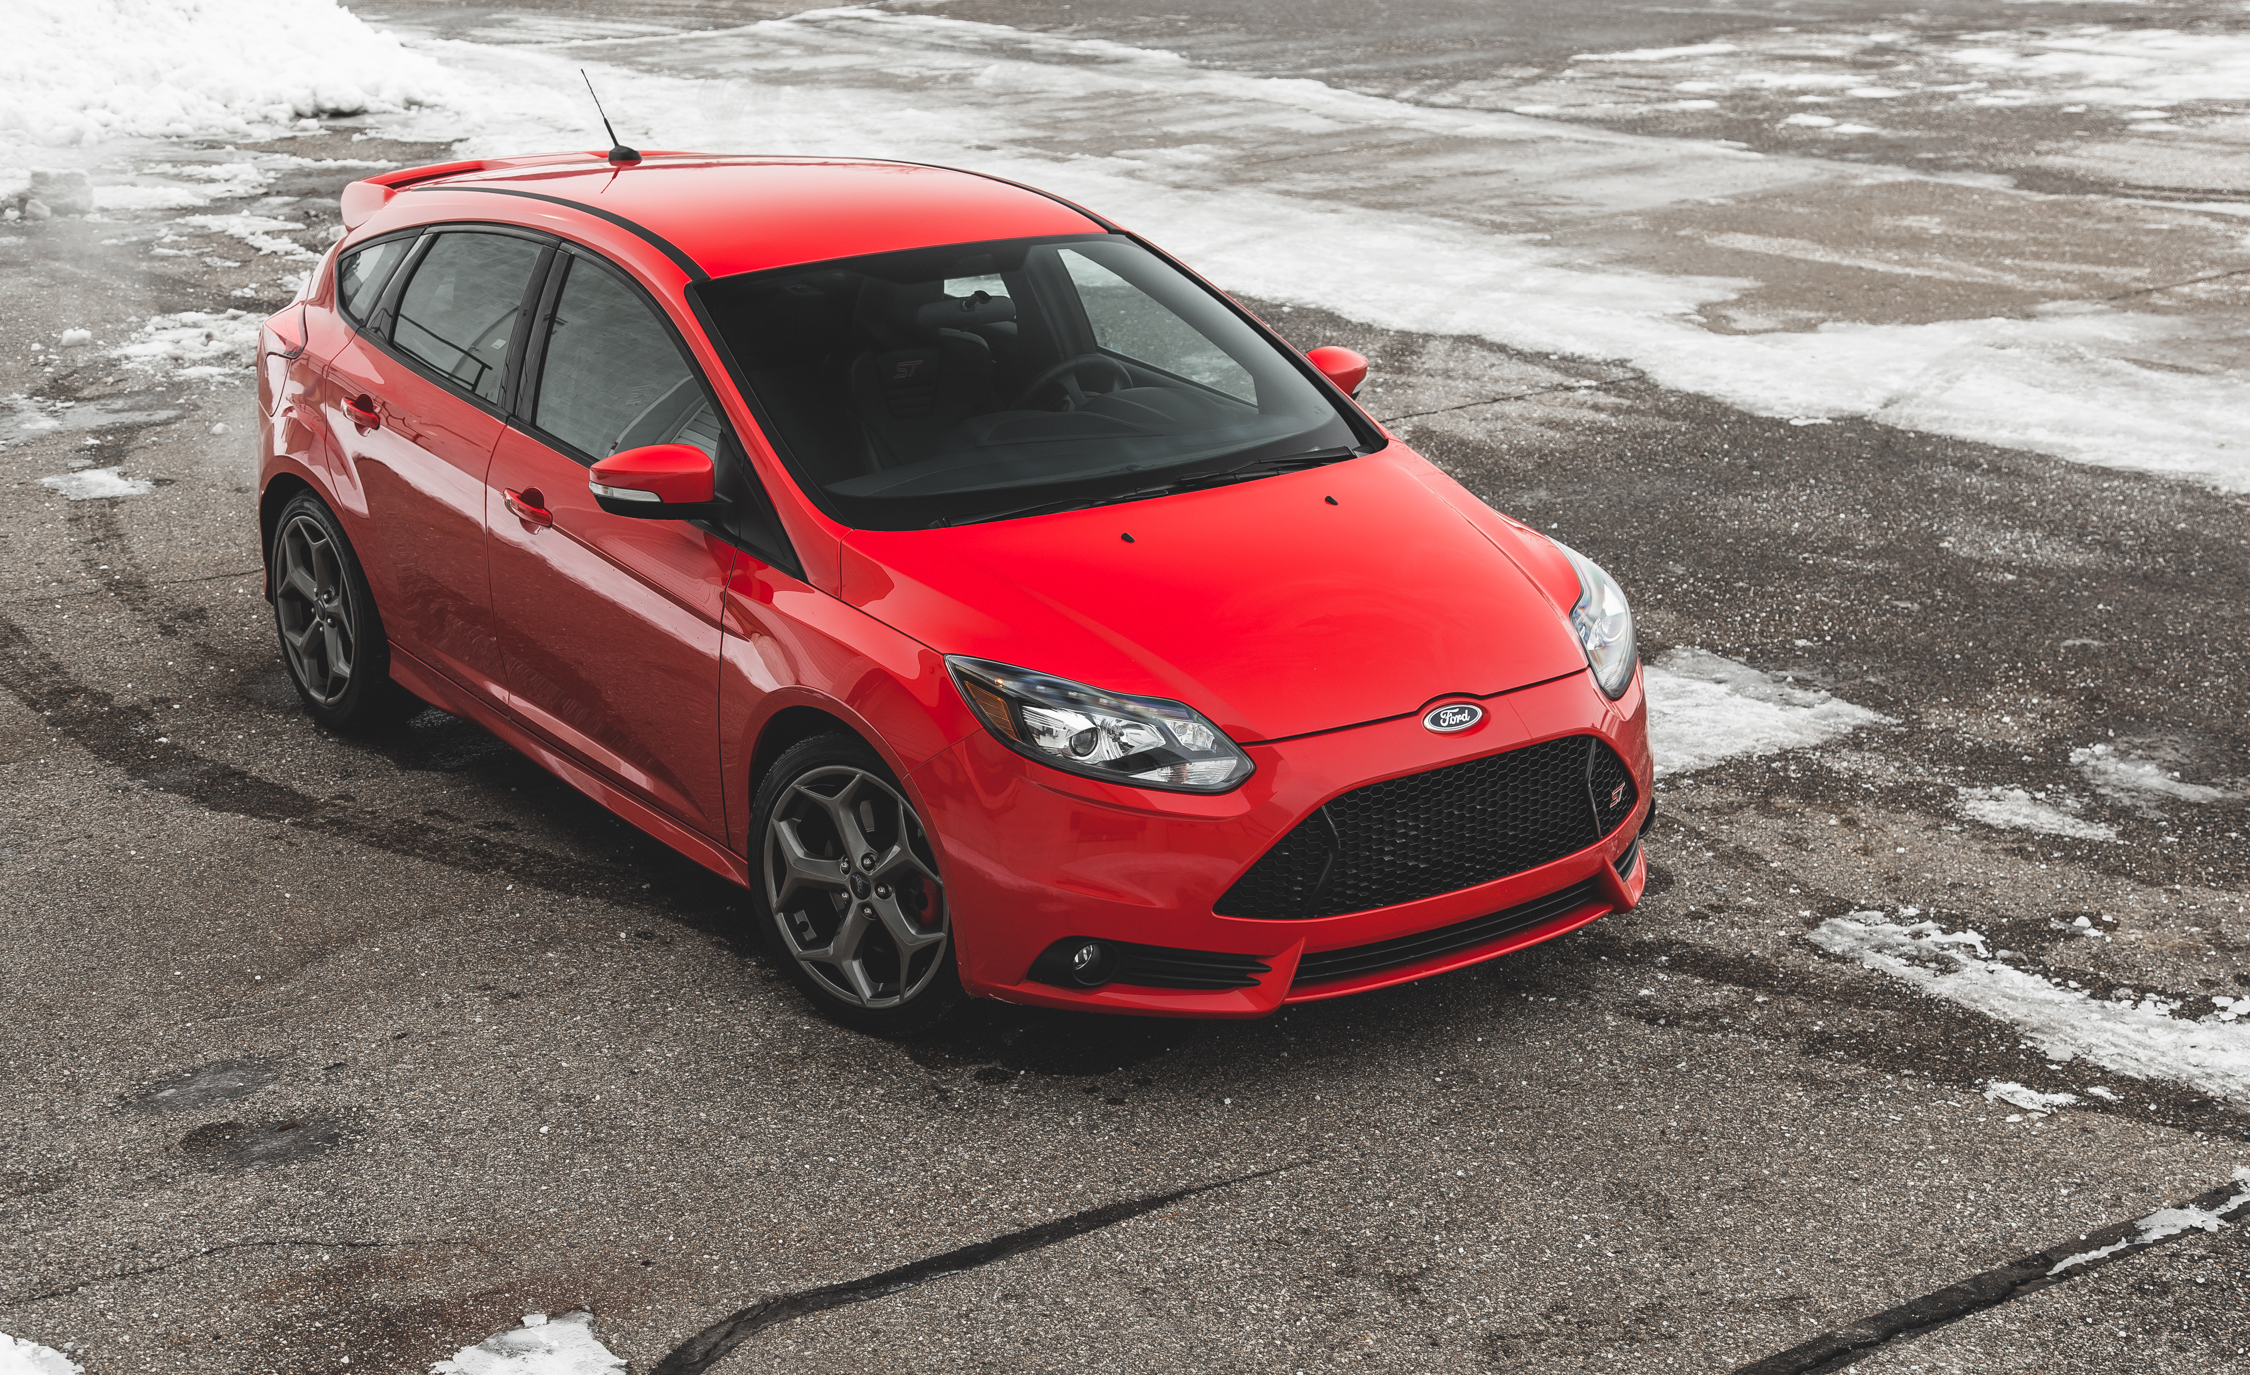 2014 ford focus st photo 3 of 25